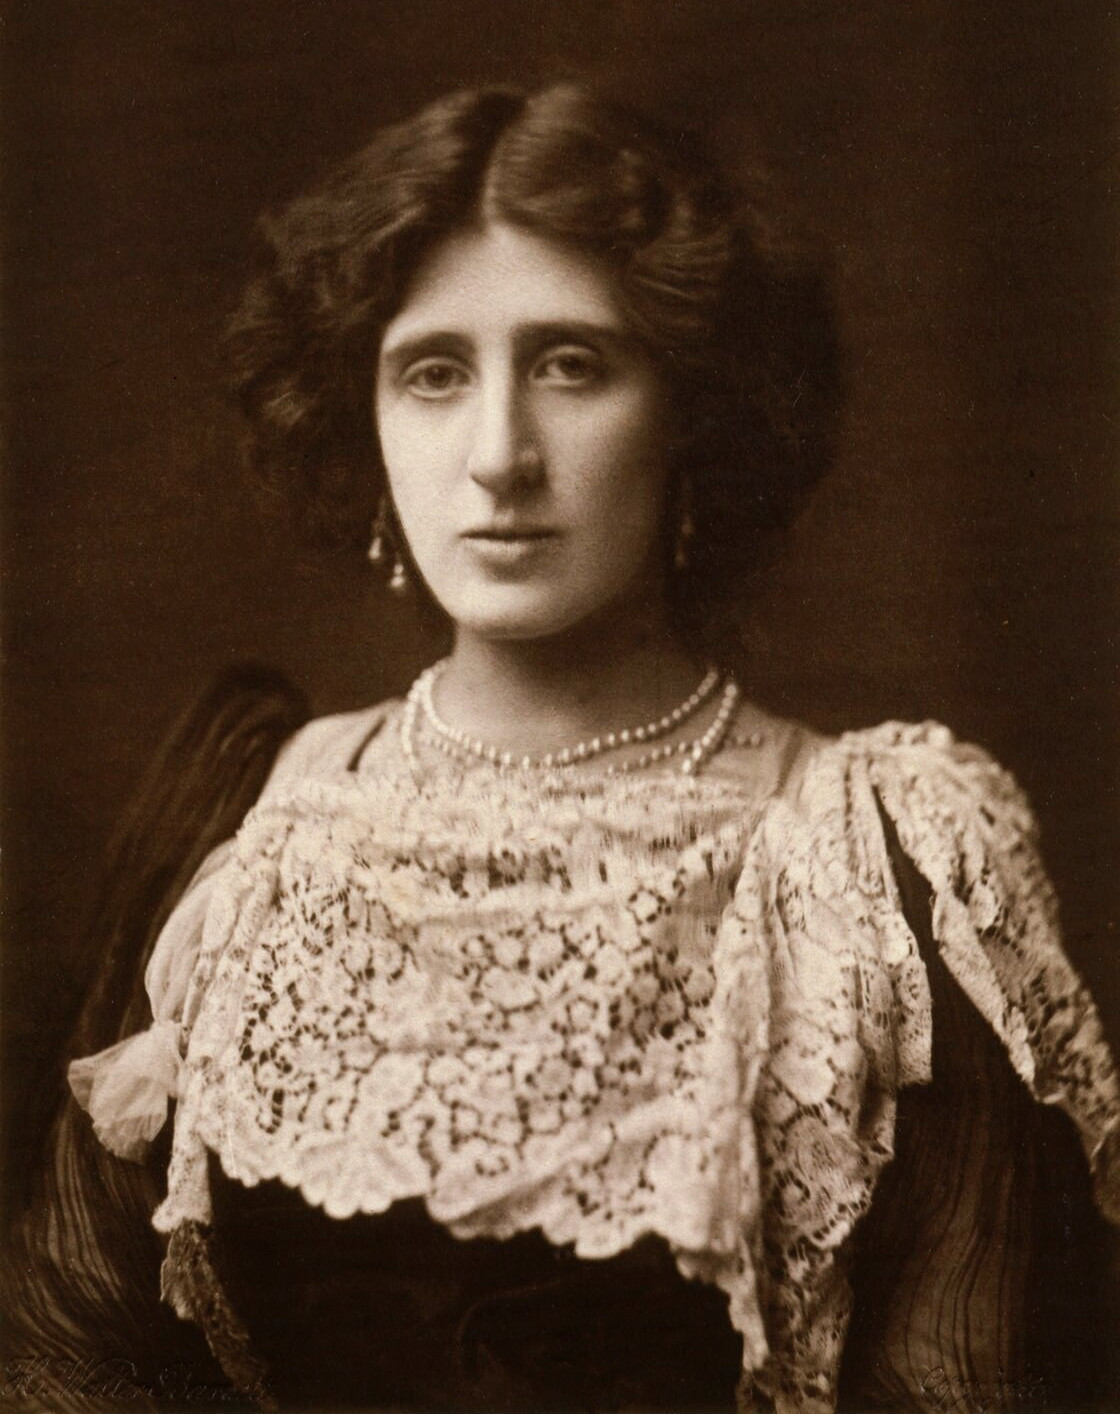 Image of Lady Ottoline Morrell from Wikidata